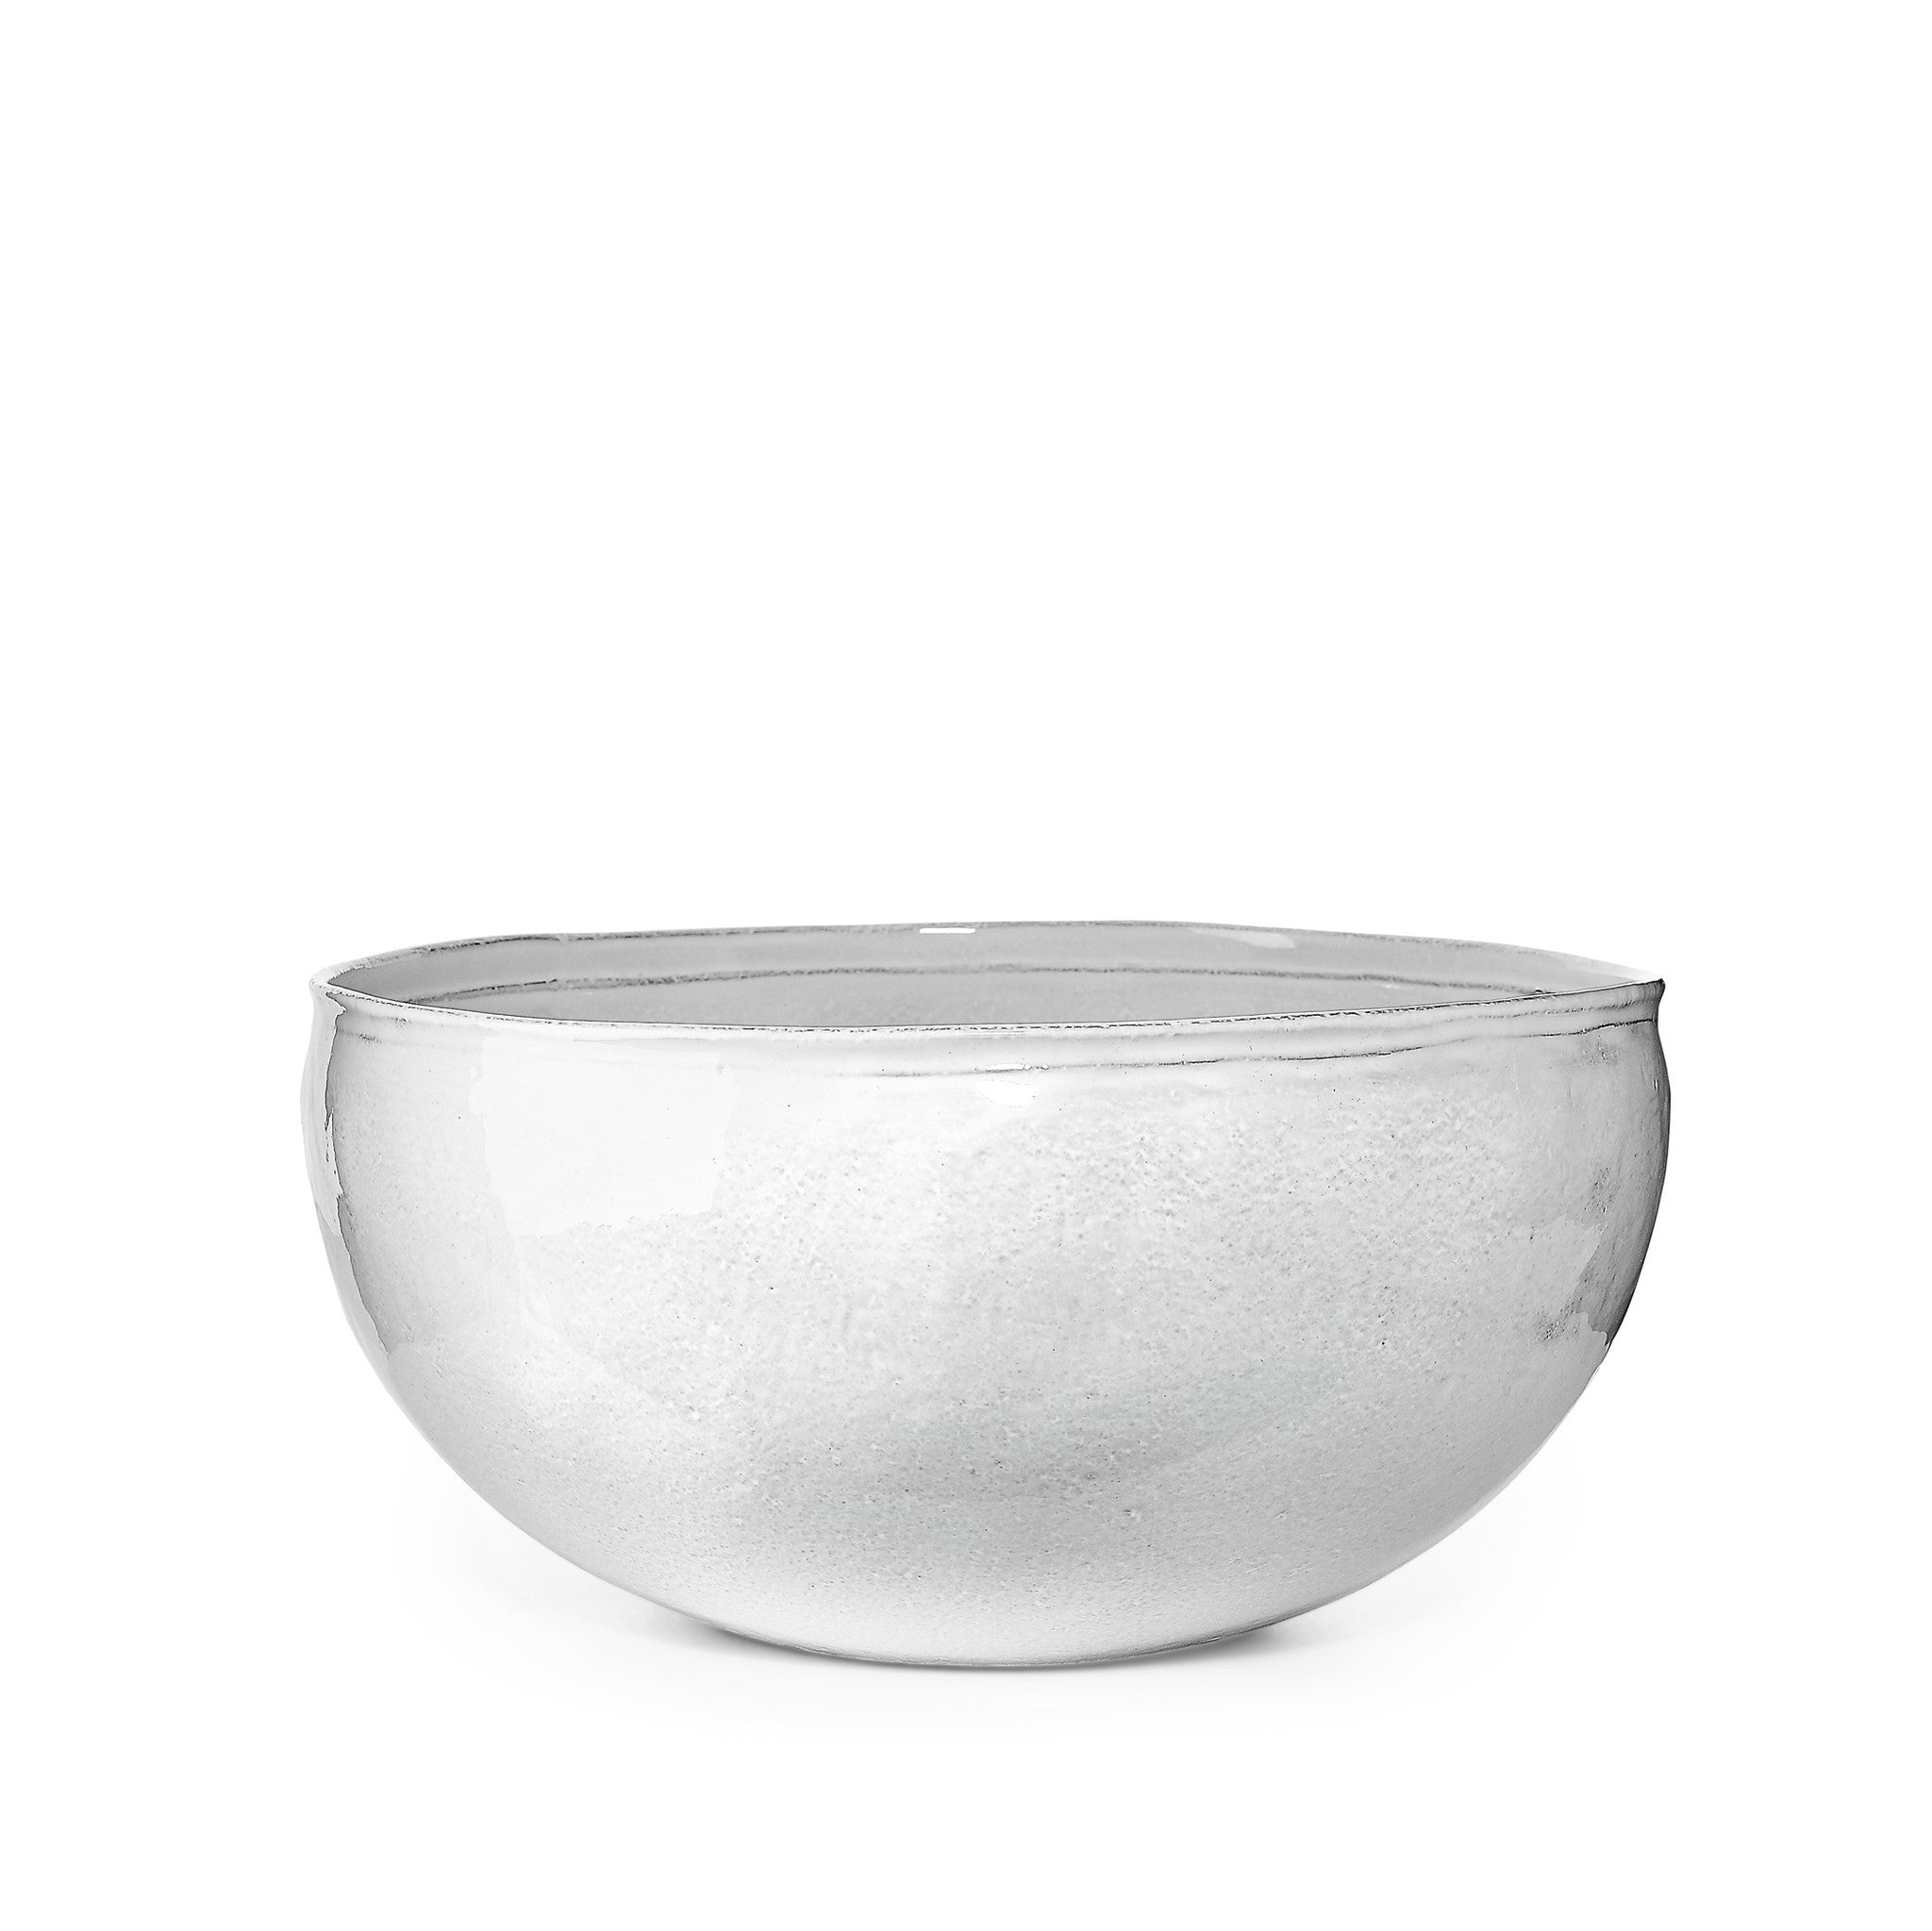 Simple Large Salad Bowl by Astier de Villatte